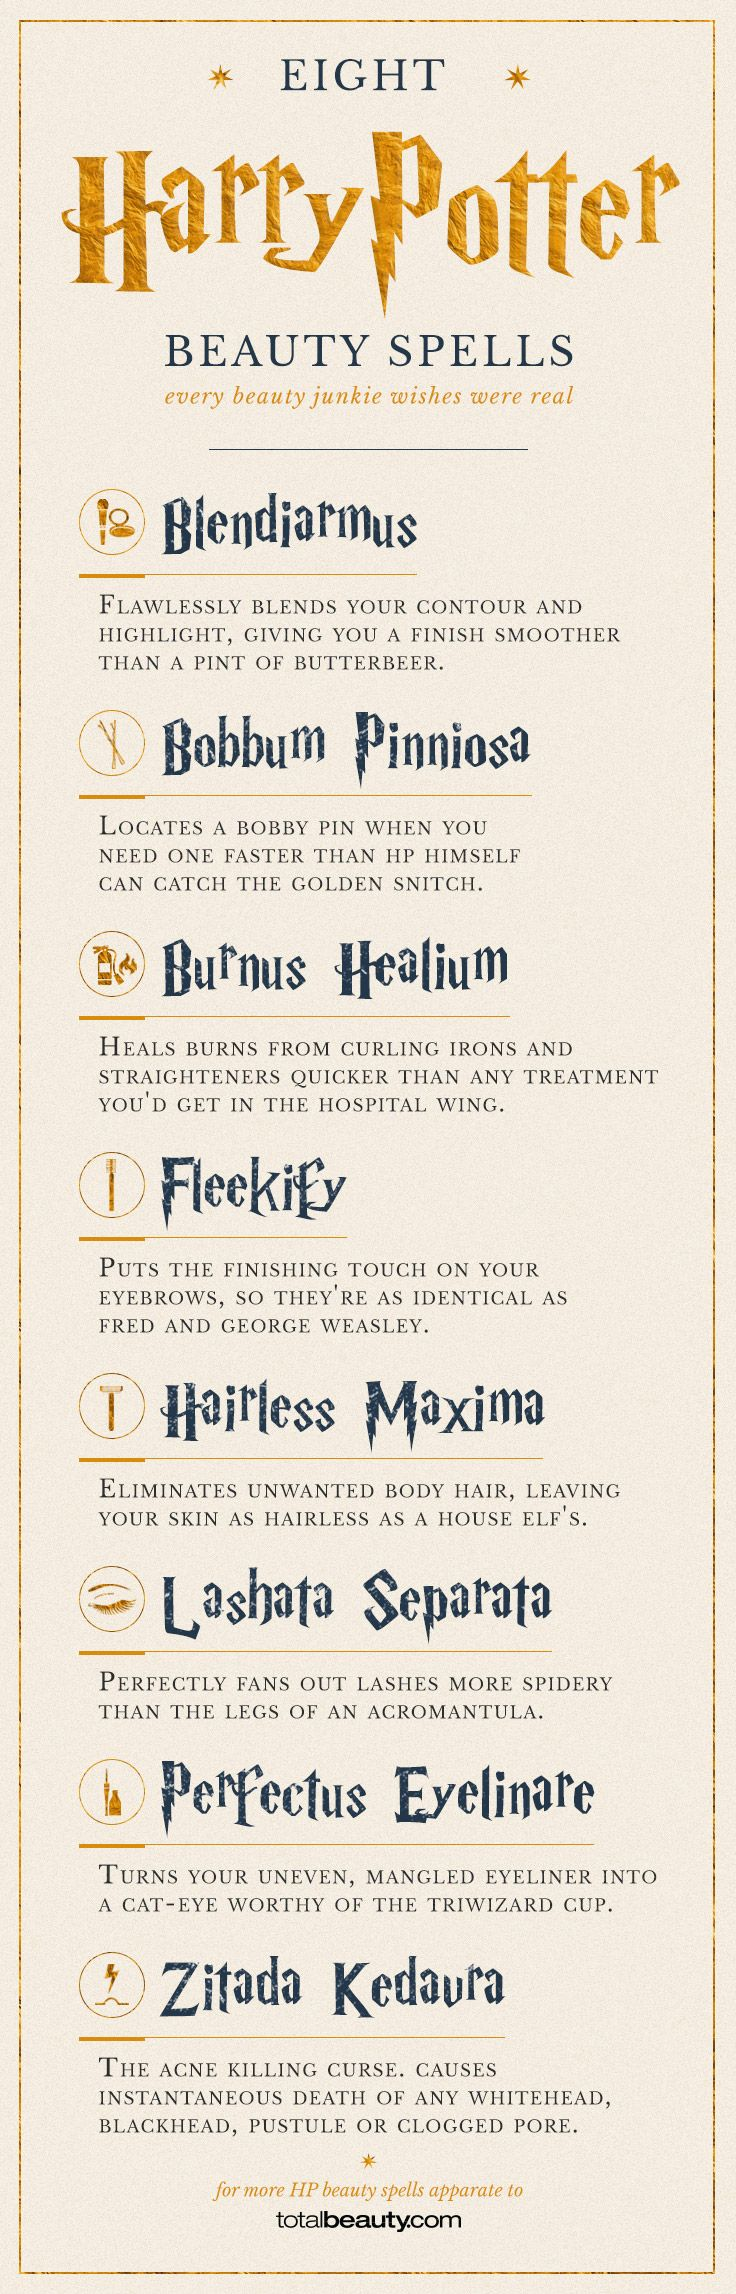 20 Harry Potter Spells Every Beauty Junkie Wishes Were Real | Beauty